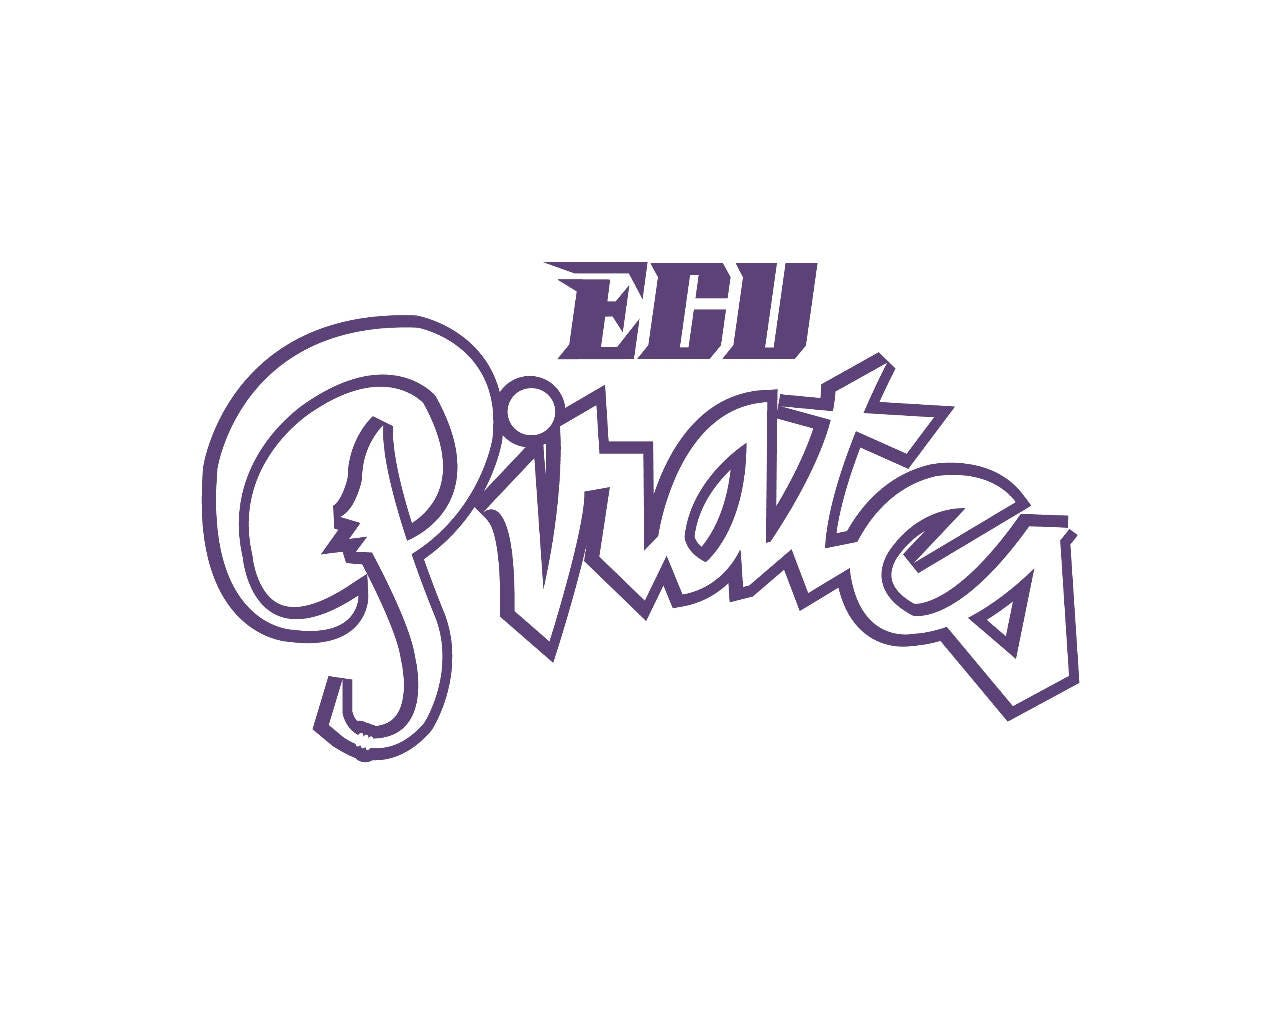 Ecu Pirates Svg Dxf Eps Png Cut File Pack From Megasvg On